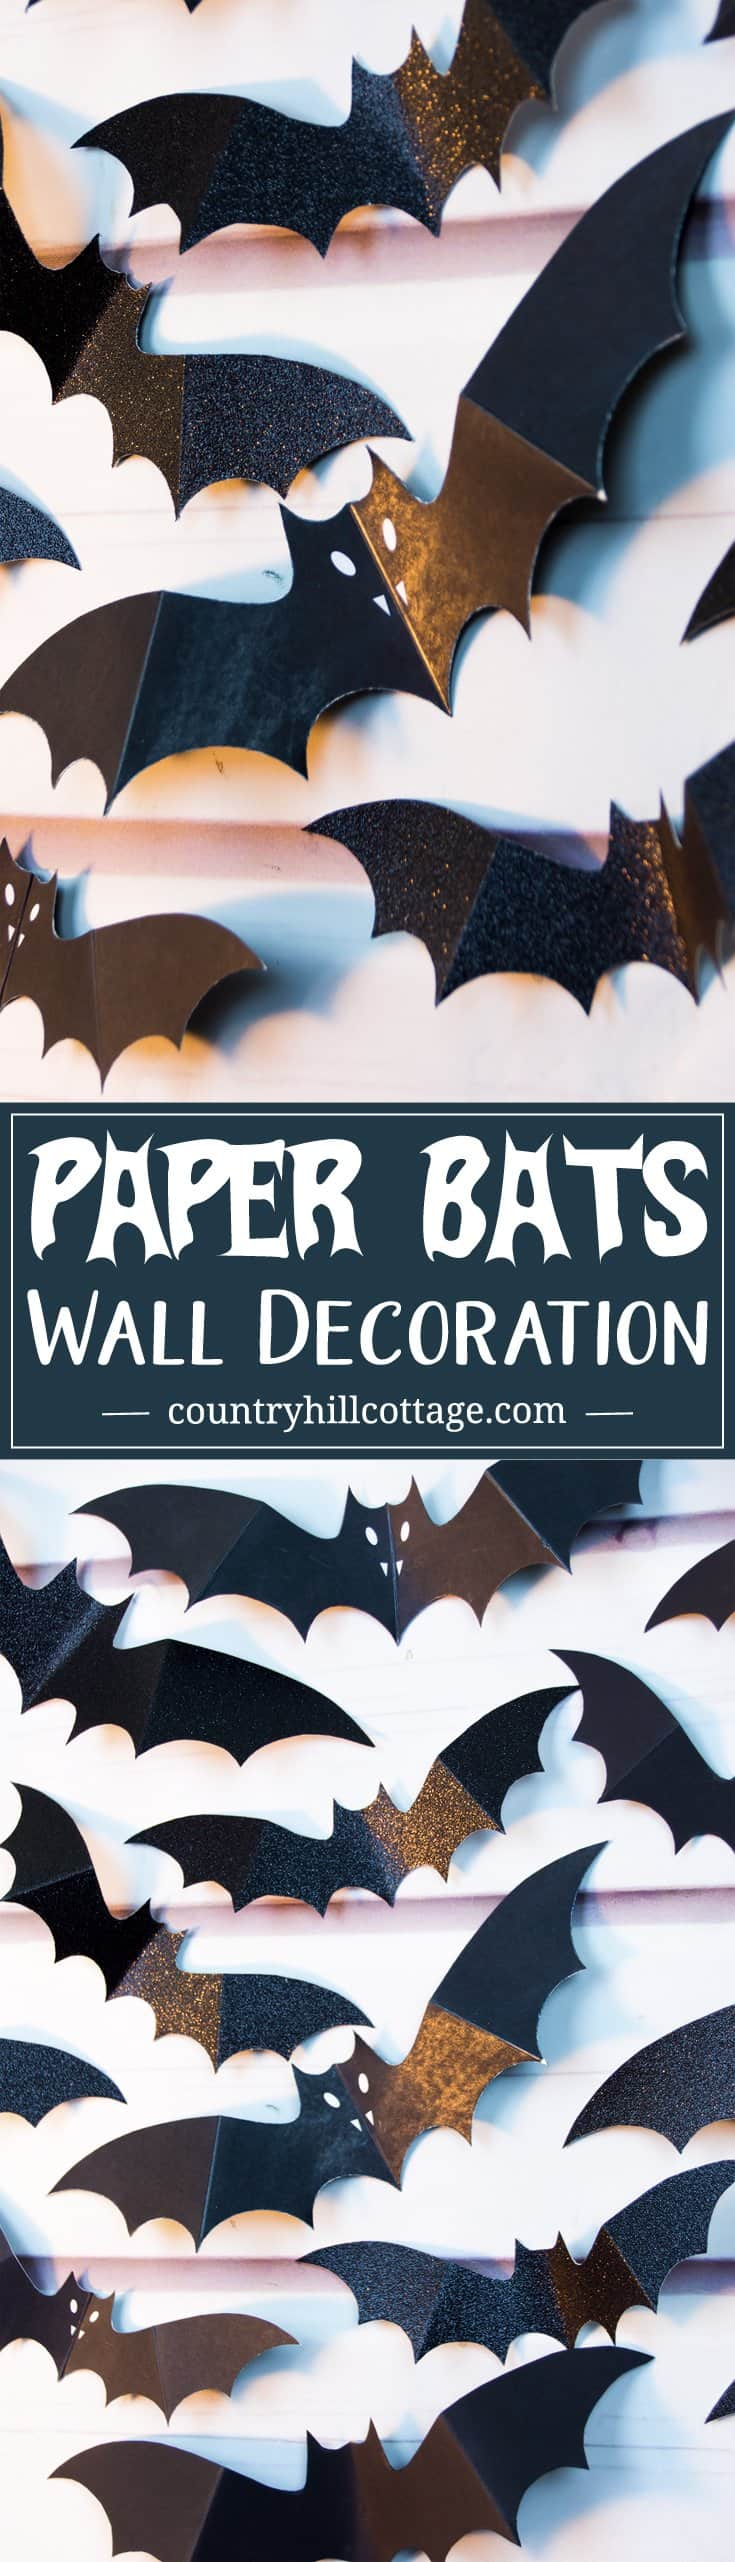 Swarm of Paper Bats DIY Halloween Wall Decoration. Visit our blog to download a free printable template to create the paper bats. #halloween #diy #papercrafts  countryhillcottage.com